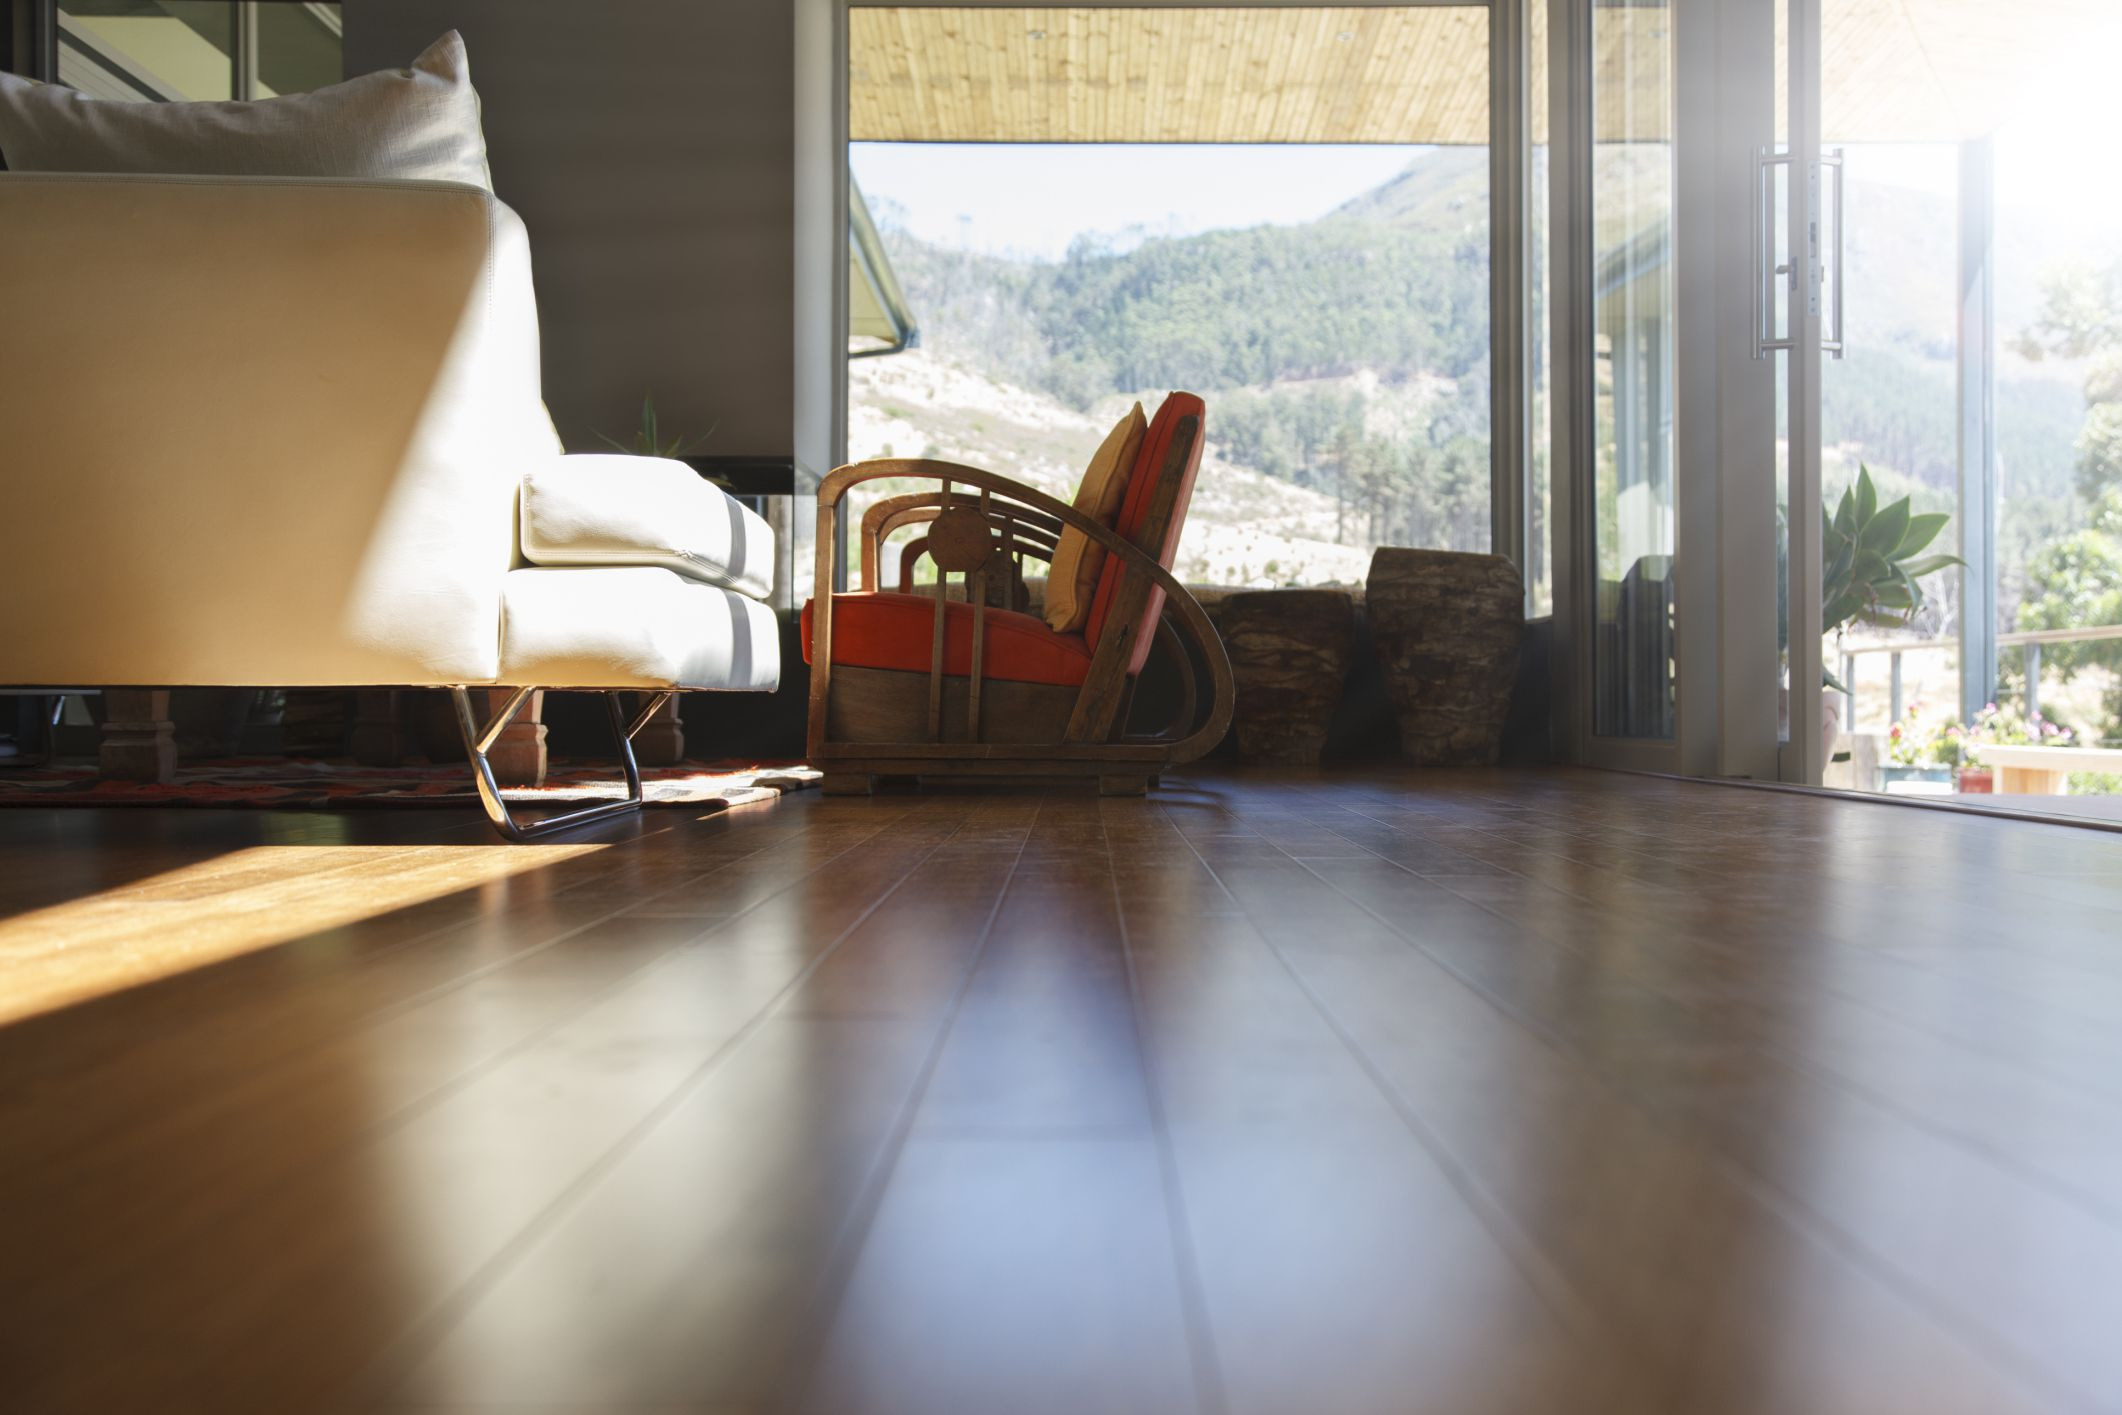 how to install engineered hardwood flooring in basement of floating floors basics types and pros and cons with exotic hardwood flooring 525439899 56a49d3a3df78cf77283453d